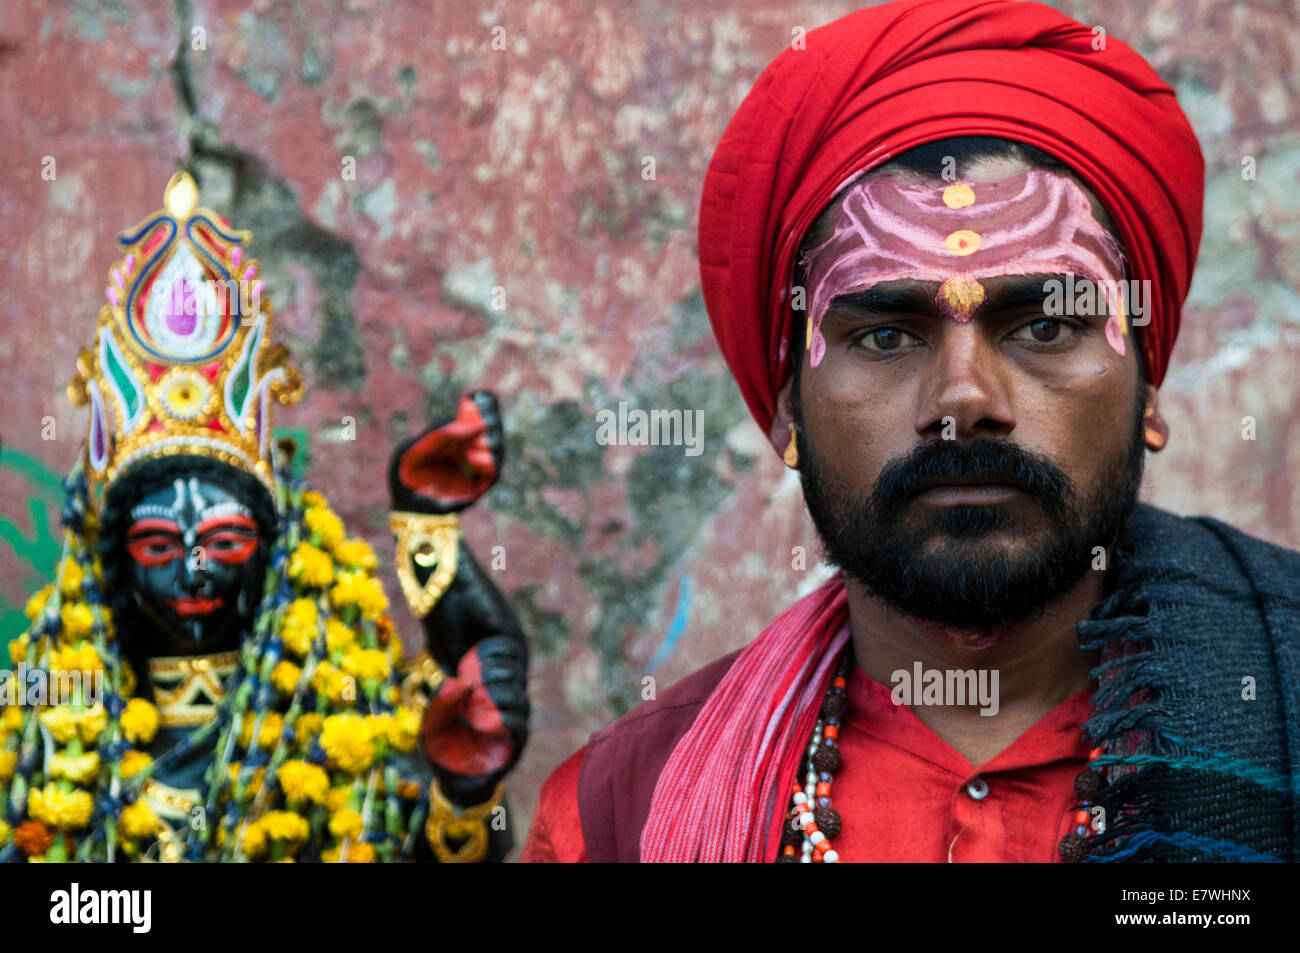 A Sadhu by the Hooghly river in Kolkata. - Stock Image